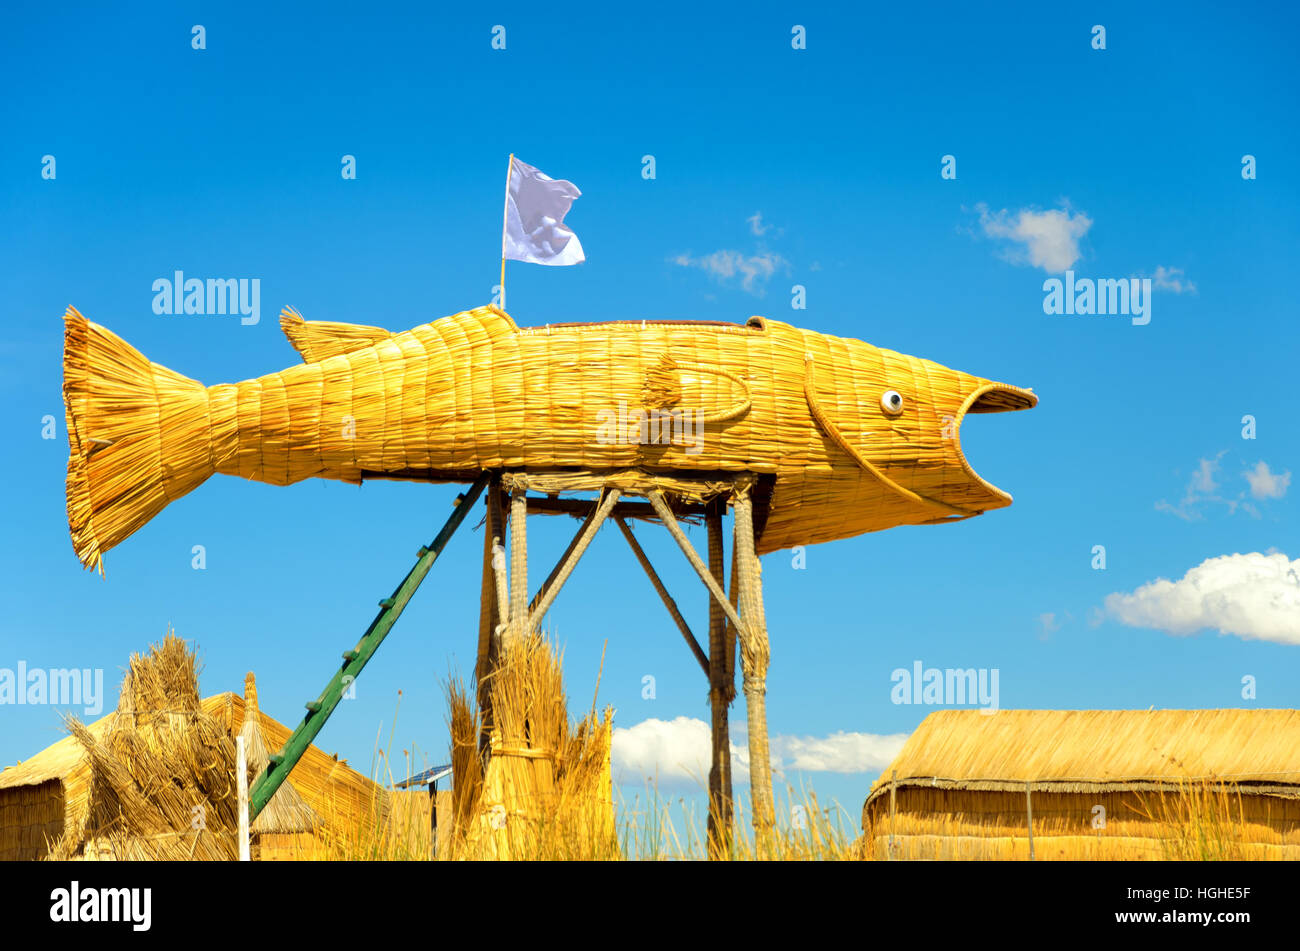 Fish made from reeds in the Uros Floating Islands on Lake Titicaca in Peru - Stock Image